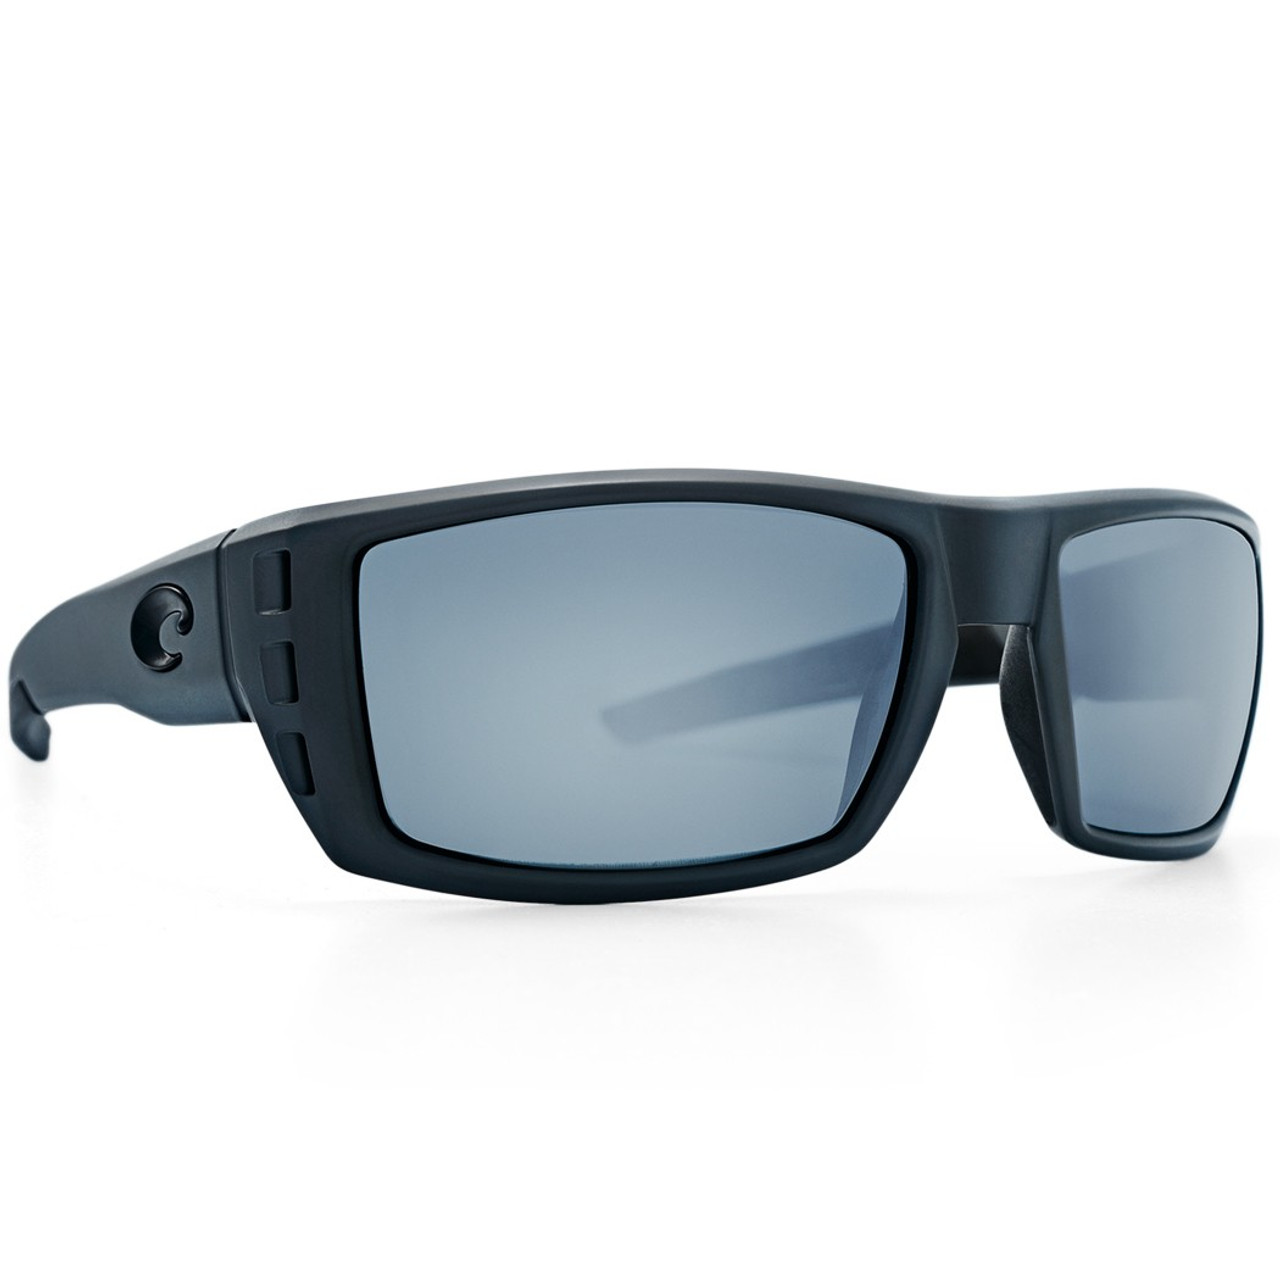 004919bff6 Costa Sunglasses - Rafael OCEARCH - Matte Gray Gray Silver Mirror - Surf  and Dirt